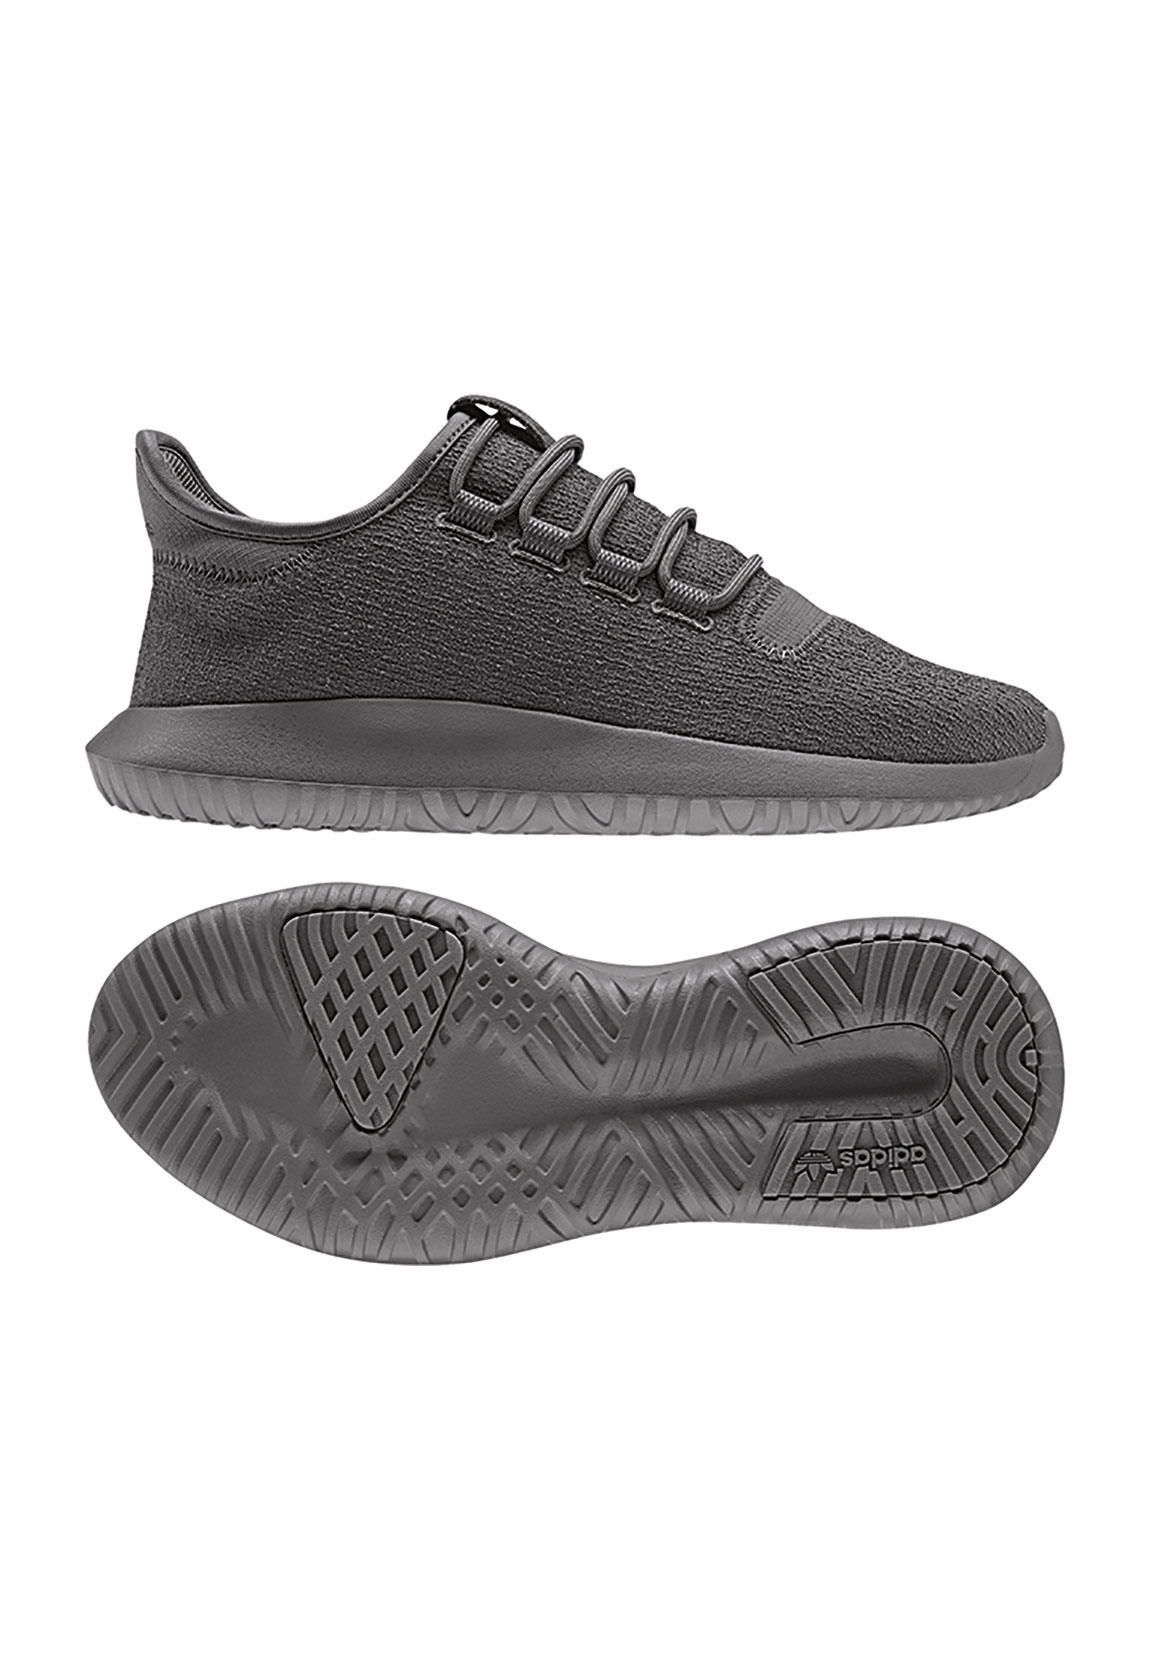 Details about Adidas Sneaker Women's Tubular Shadow W BY9741 Grey